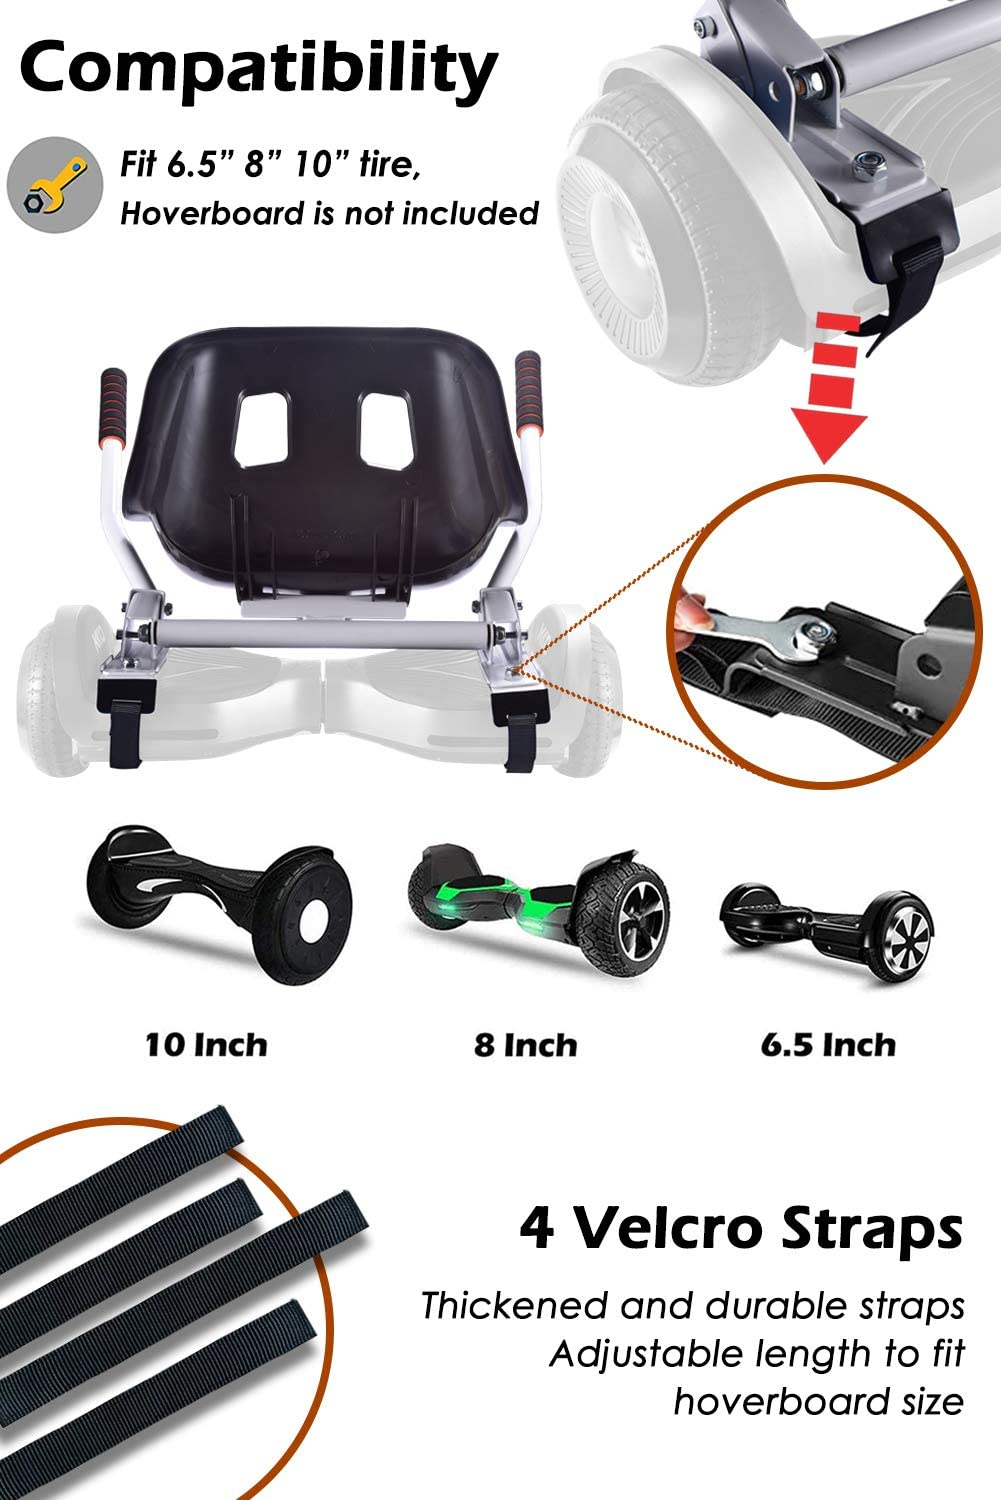 """KUMAMOT Hoverboard Seat Attachment for 6.5/"""" 8/"""" 10/"""" Hoverboard Go Kart Cart Conversion Kit Adjustable Frame Length Accessories for Self Balancing Scooter Hoverboard for Kids and Adults"""